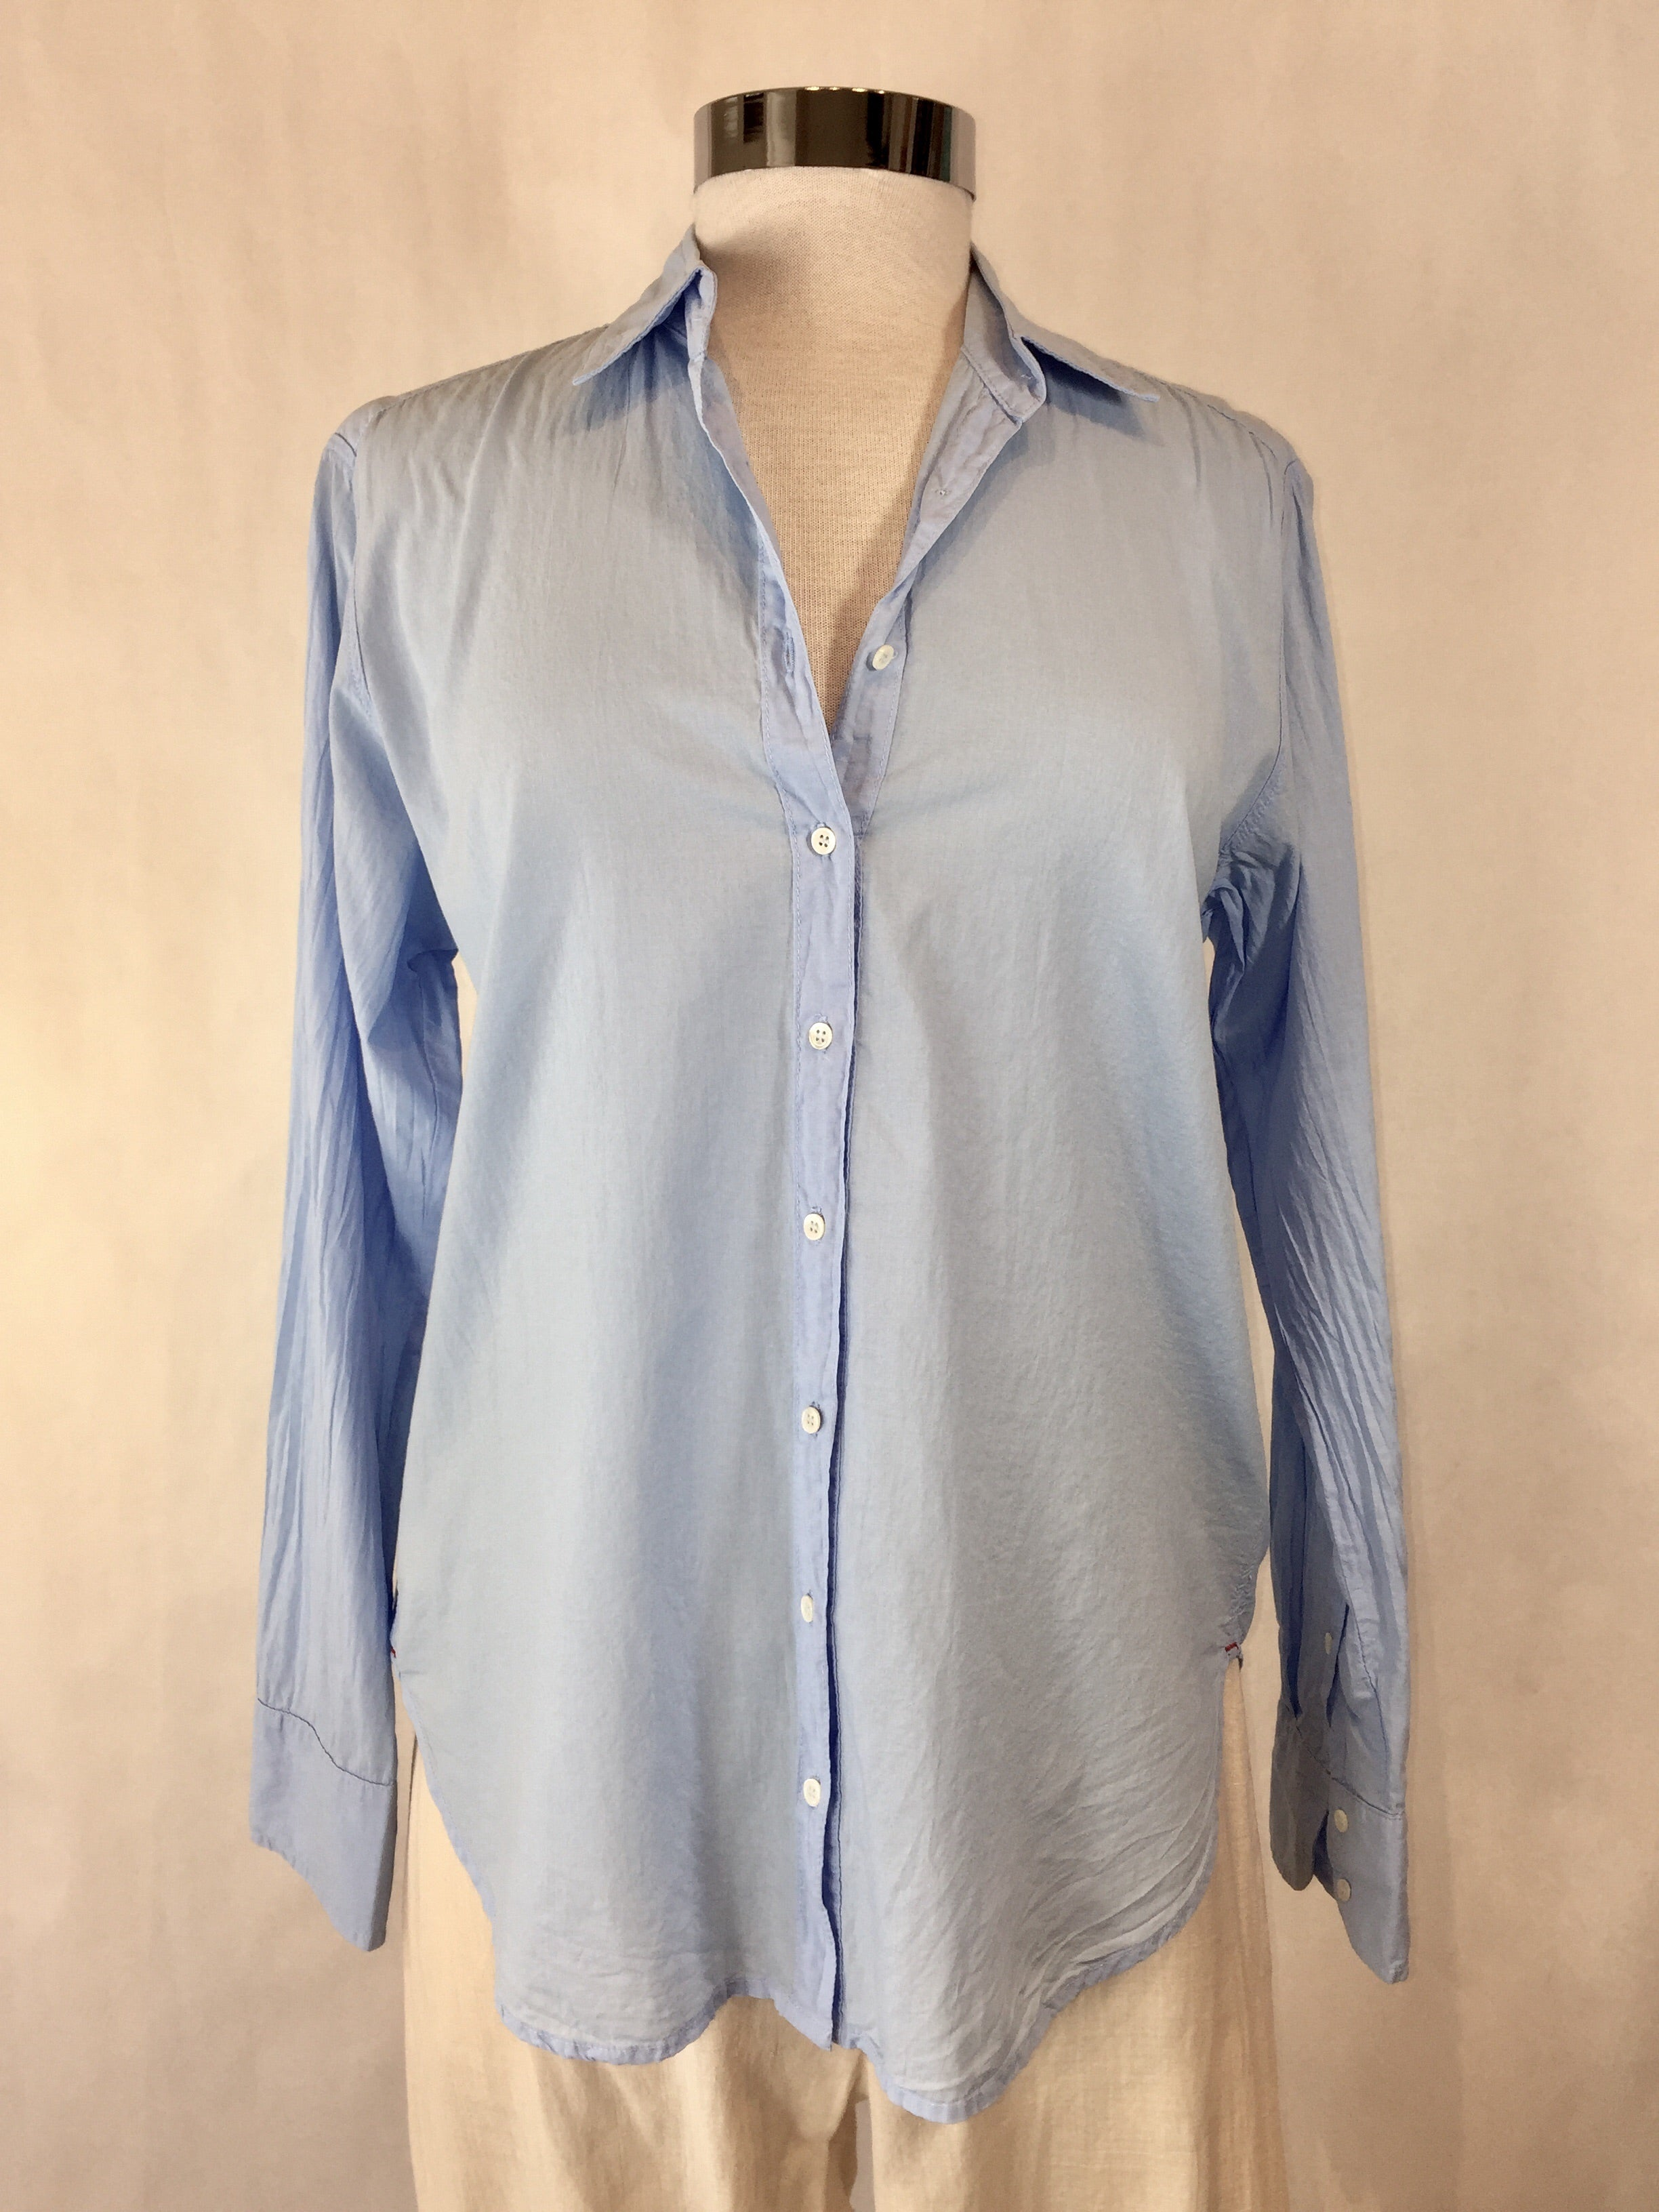 50% OFF - Light Blue Button Down Top